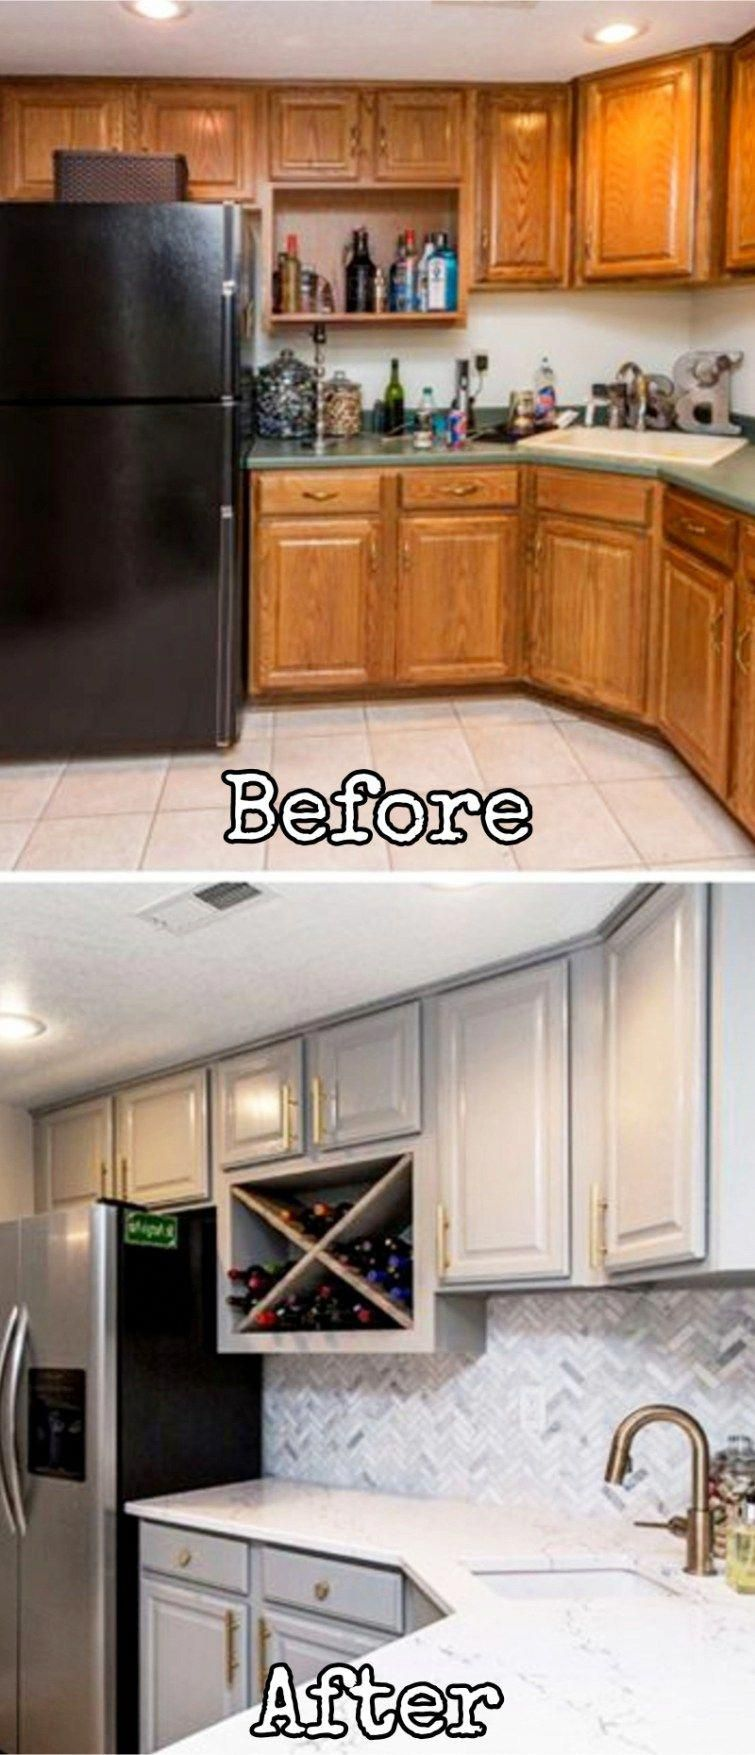 small kitchen remodel before and after pictures of small kitchen rh in pinterest com